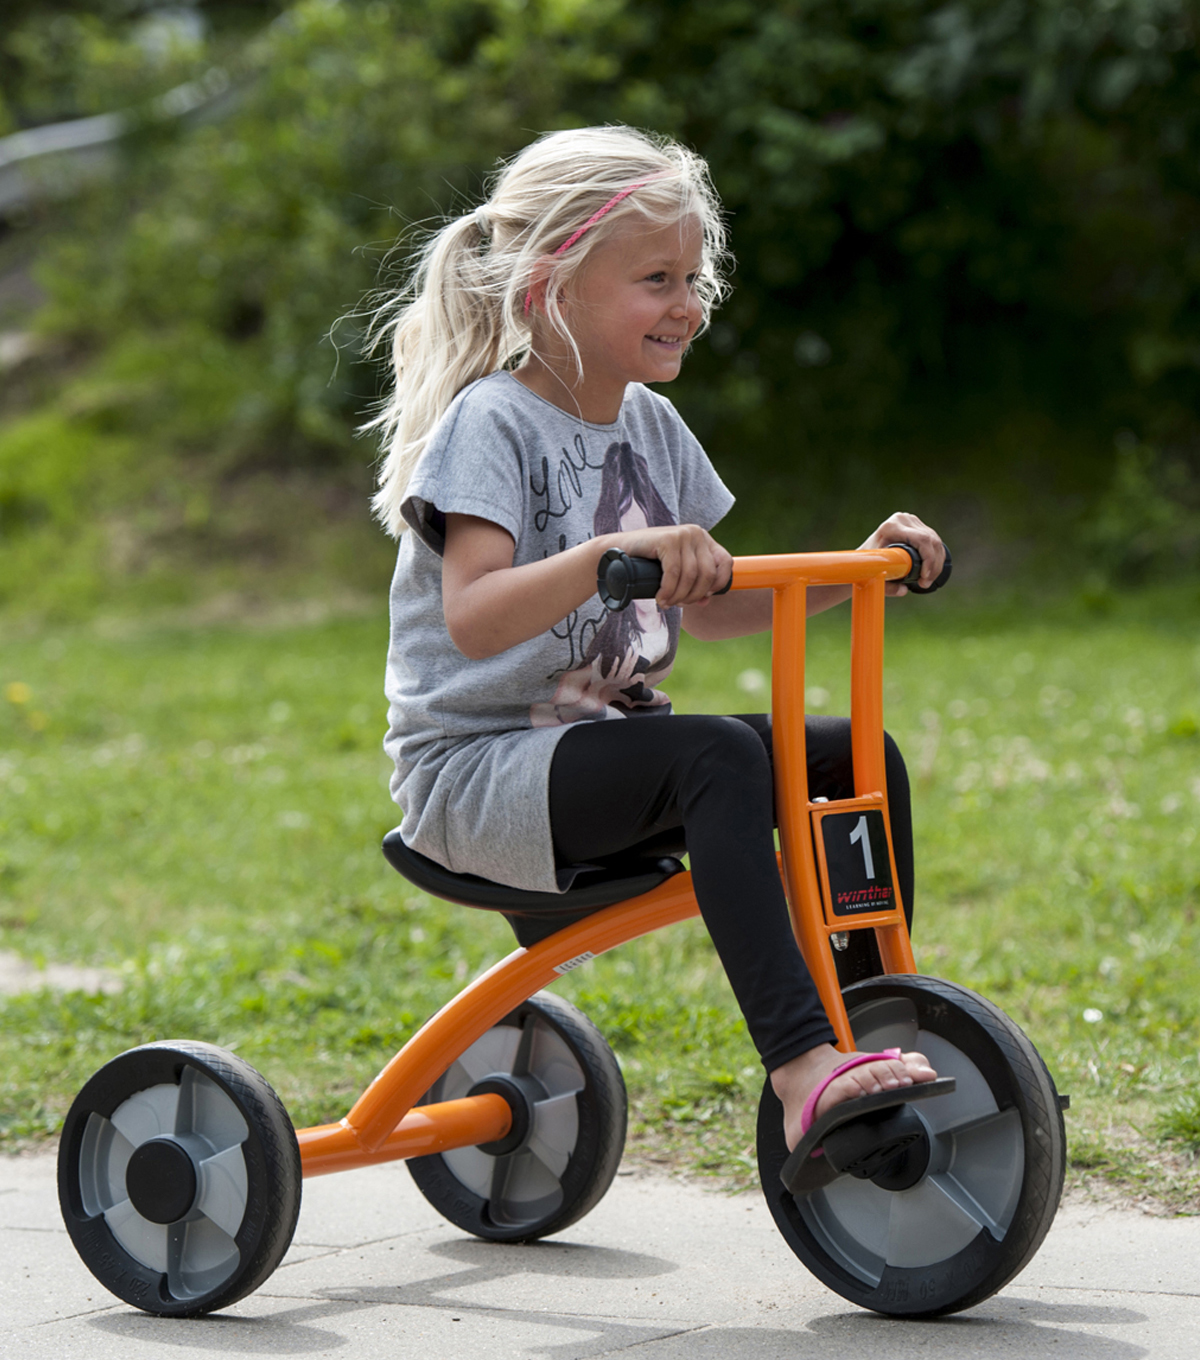 Winther Circleline Medium Tricycle-Orange